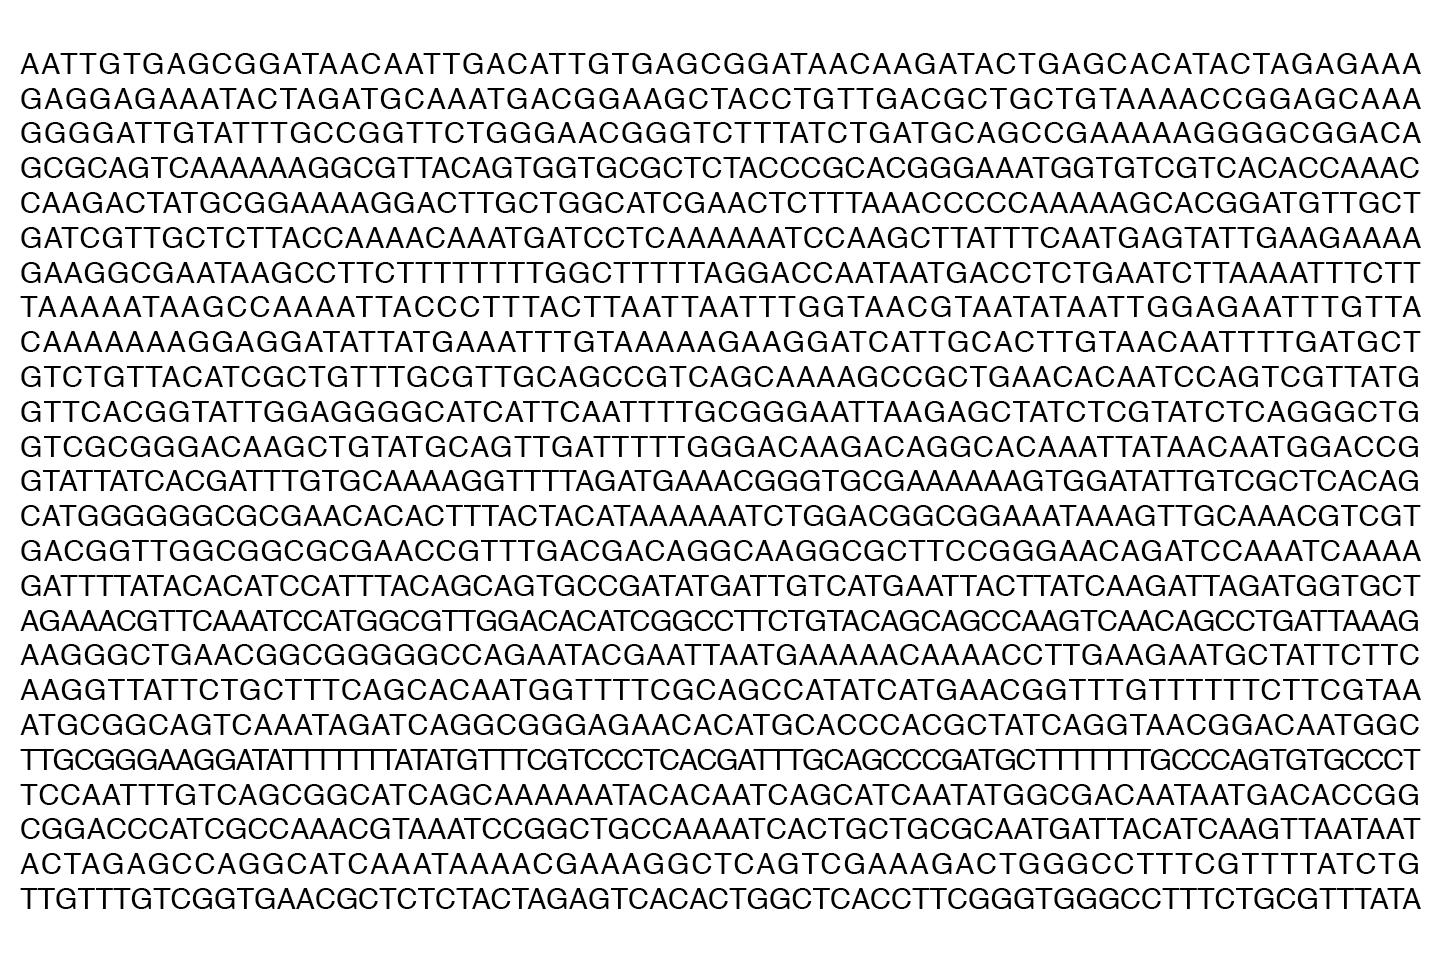 Human Dna Code | www.pixshark.com - Images Galleries With ...